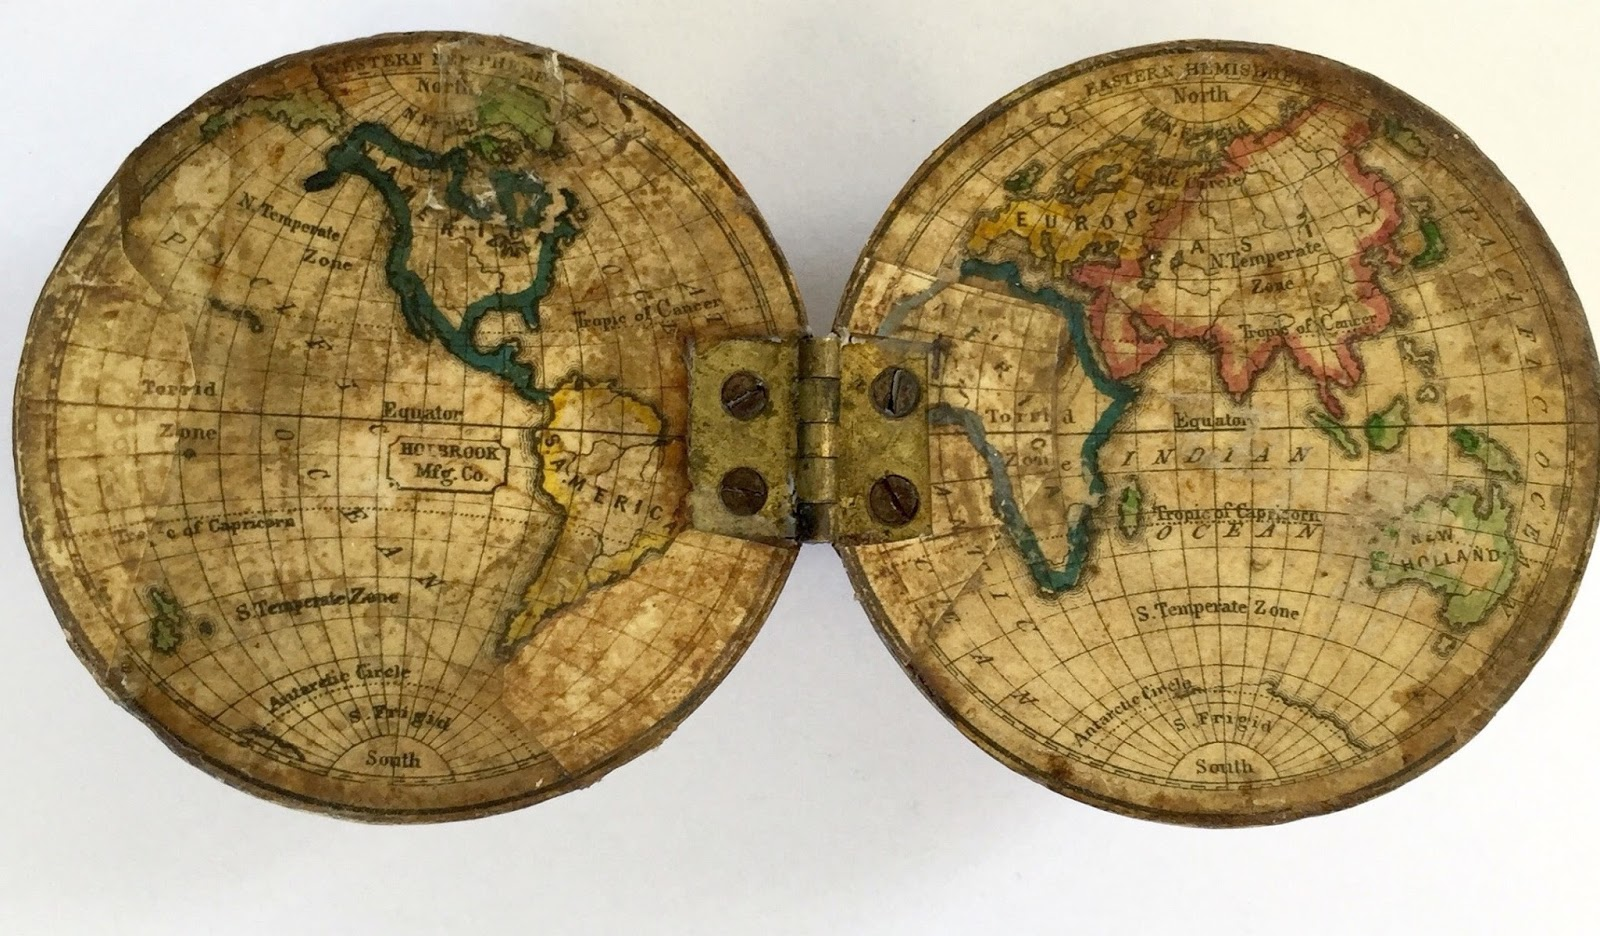 Collecting antique and vintage globes a holbrook 3 inch hinged school globe jake recently sold gumiabroncs Images